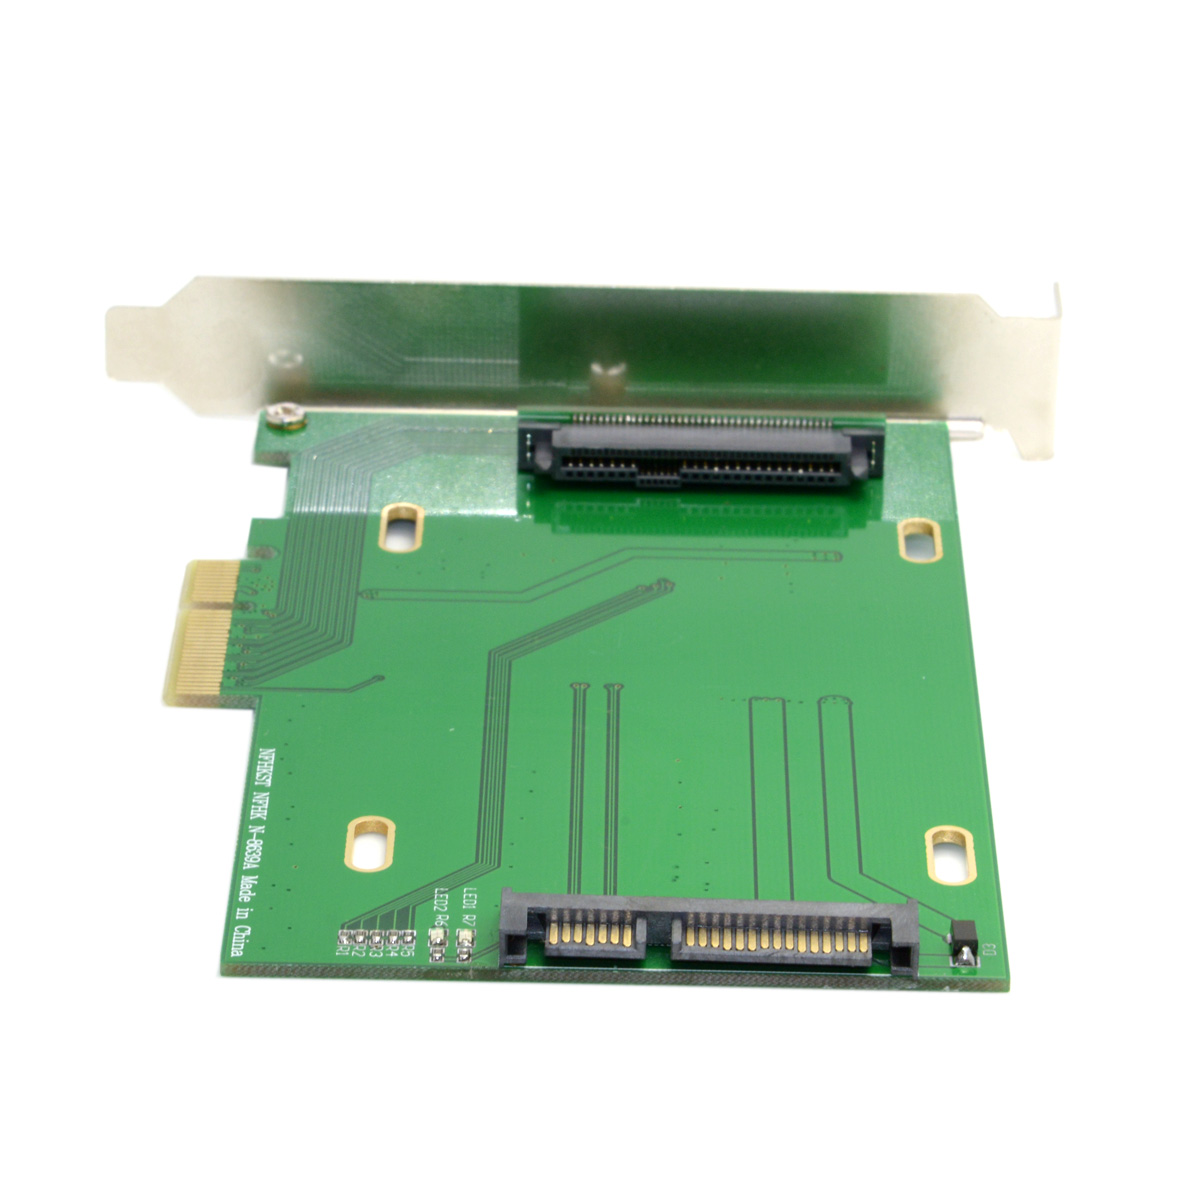 Xiwai PCI-E 3.0 X4 Lane To U.2 U2 Kit SFF-8639 Host Adapter For Intel Motherboard & 750 NVMe PCIe SSD